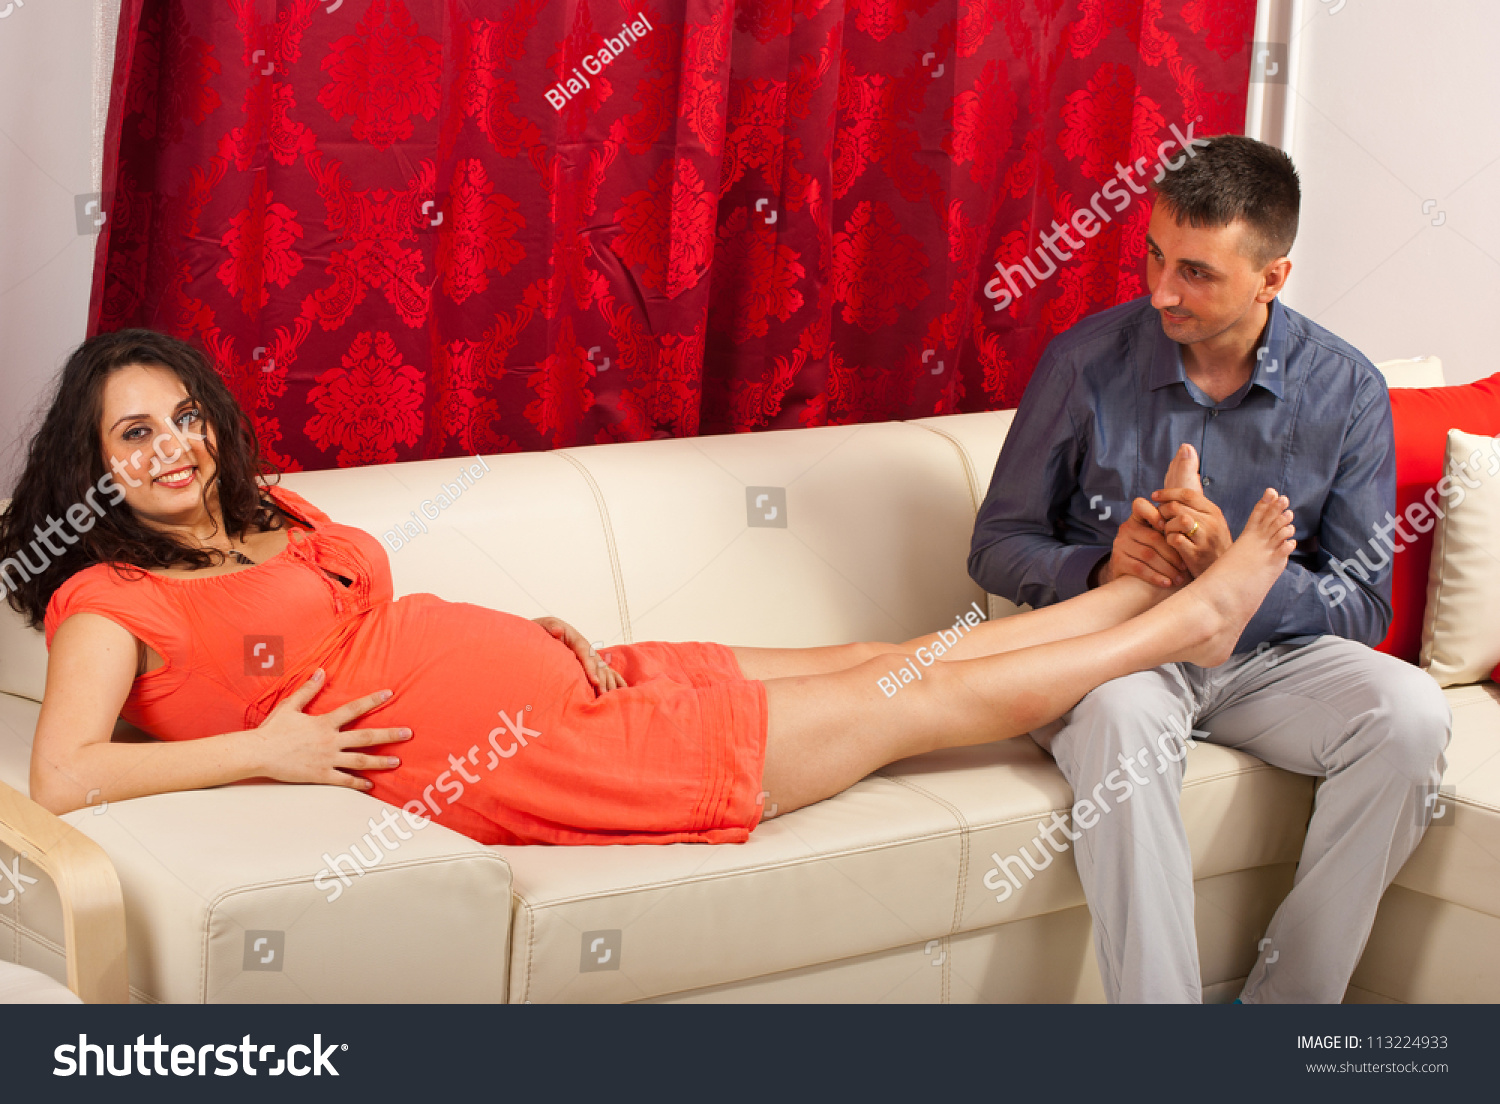 Husband massaging his pregnant wife legs and sitting together on couch in  their home